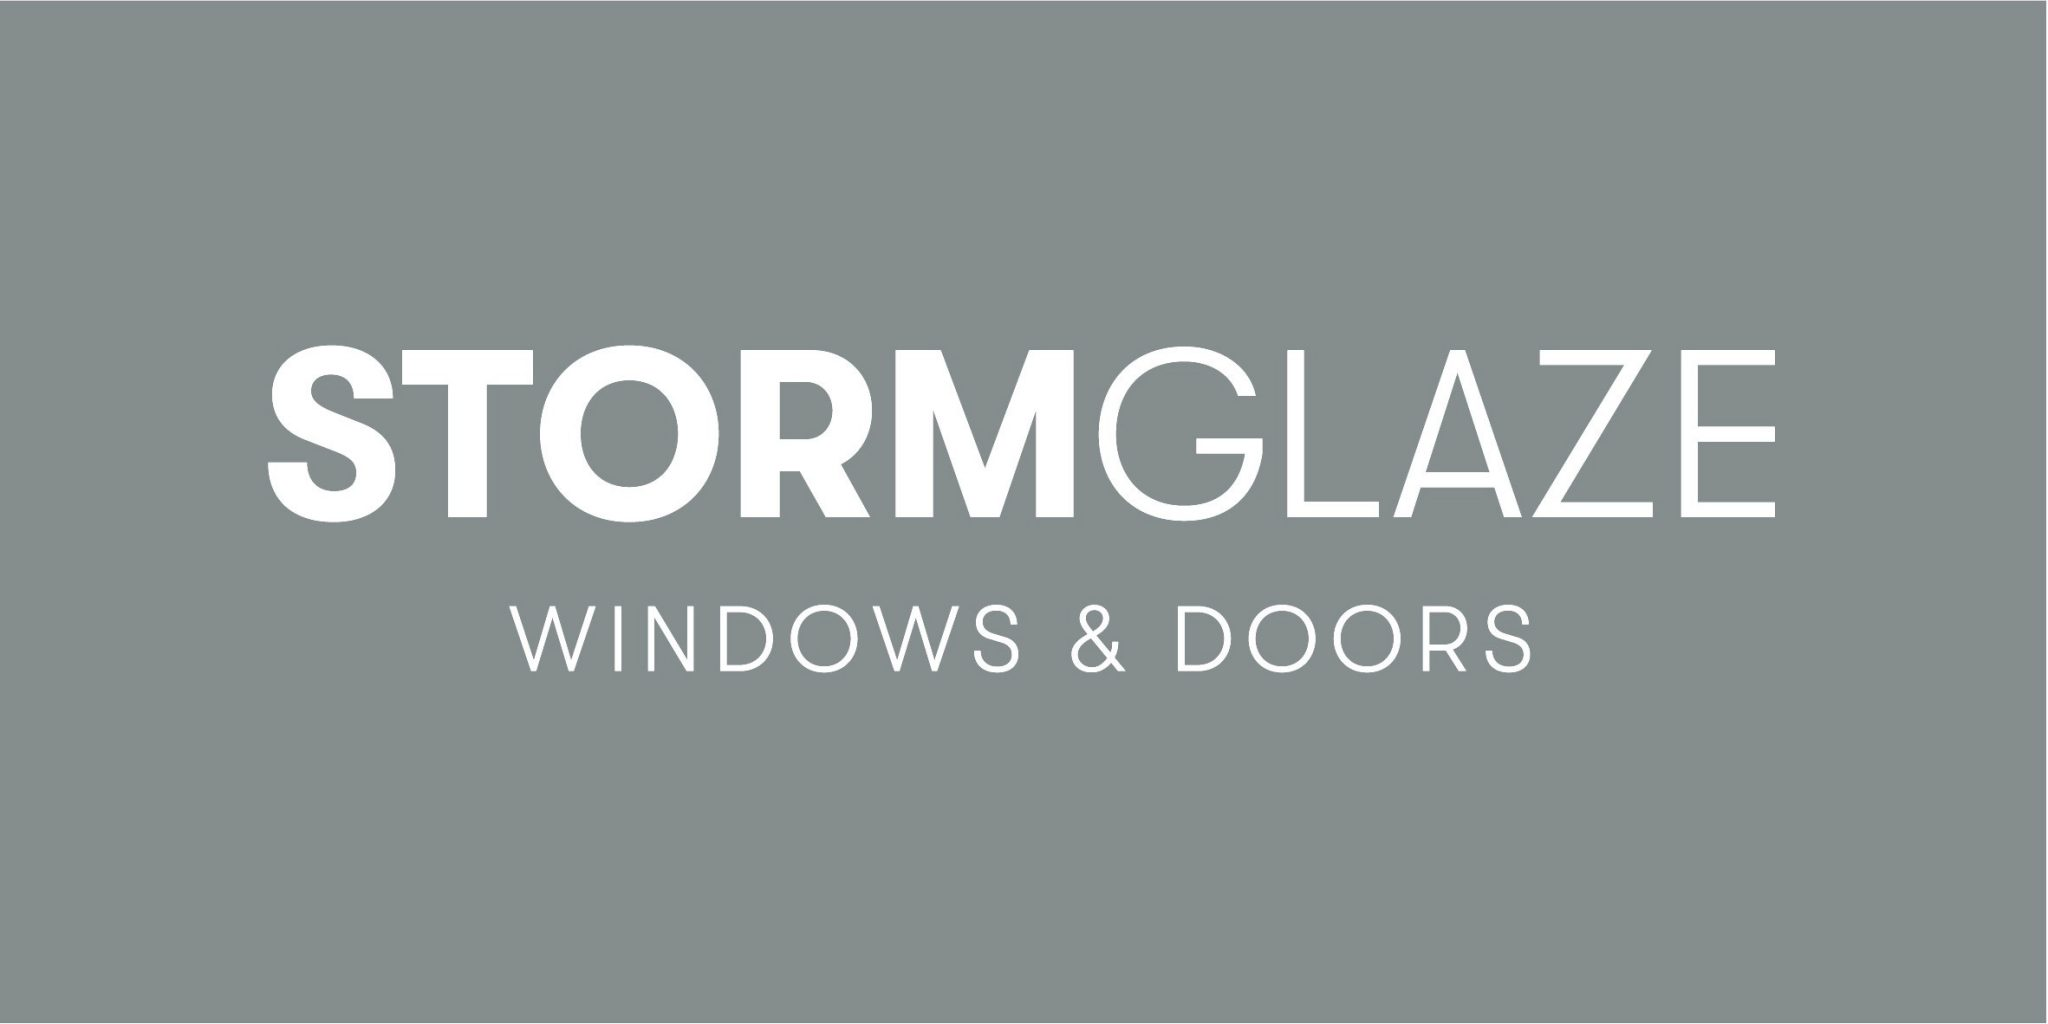 Stormglaze Windows & Doors